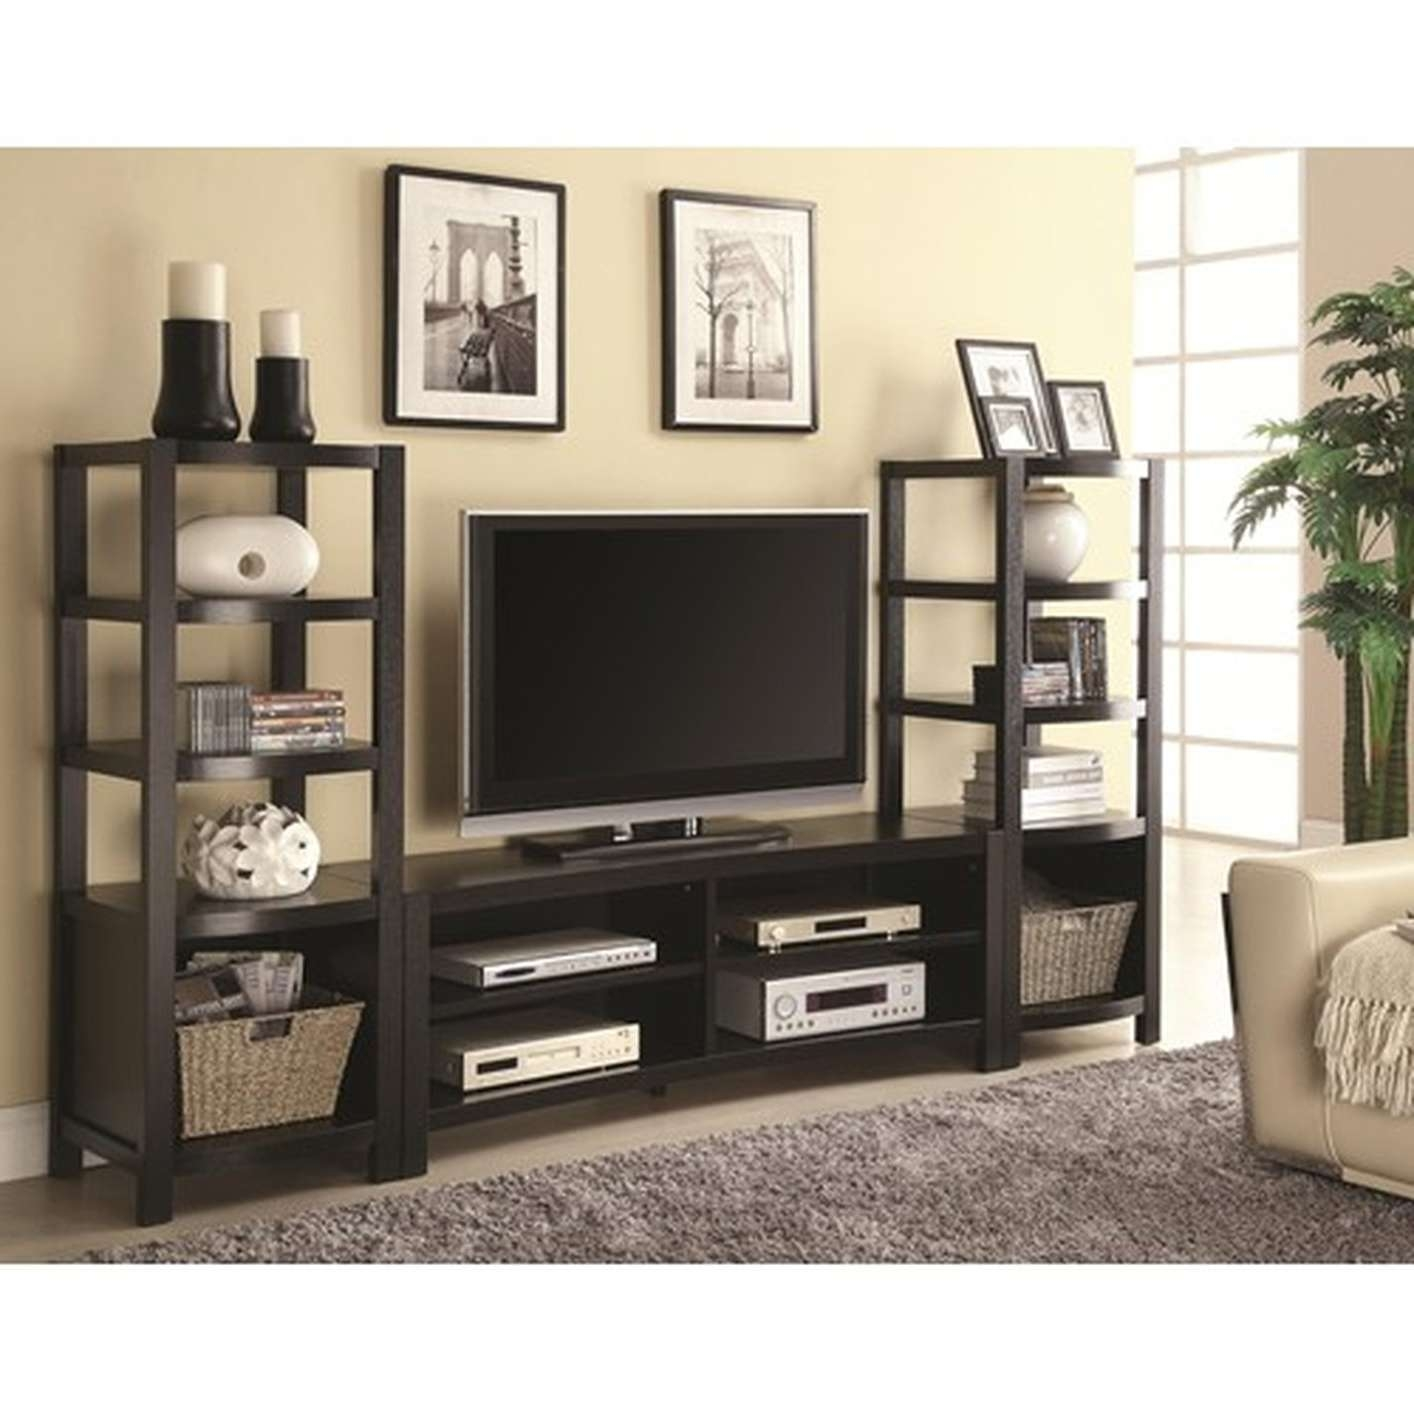 Brown Wood Tv Stand – Steal A Sofa Furniture Outlet Los Angeles Ca Pertaining To Brown Tv Stands (View 9 of 20)